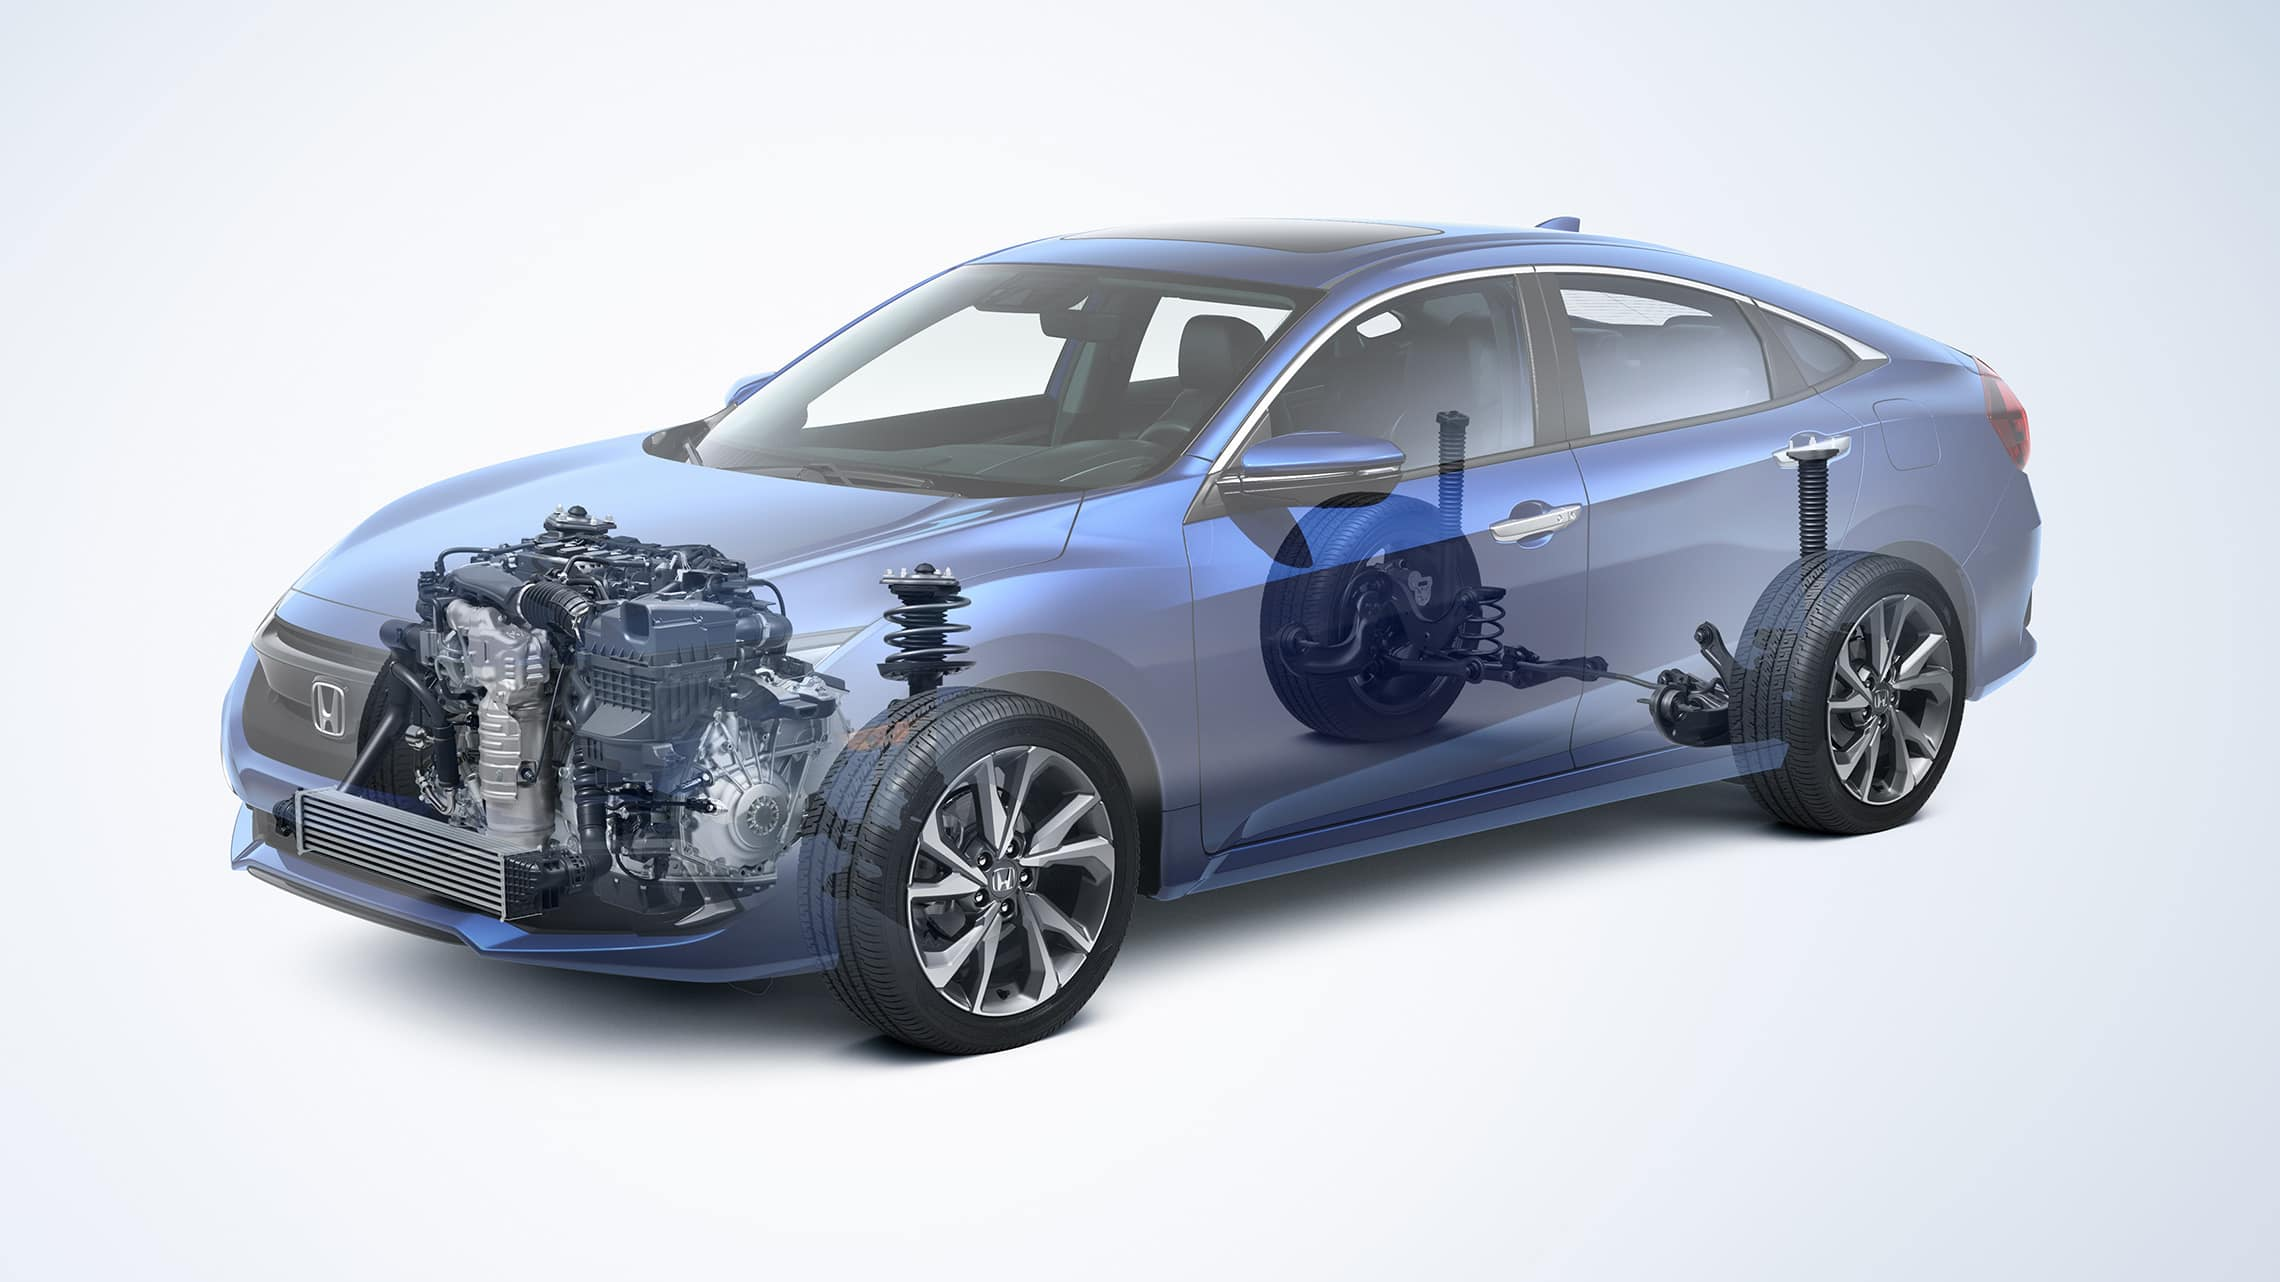 Front driver-side view of the 2021 Honda Civic Touring Sedan with drivetrain revealed.